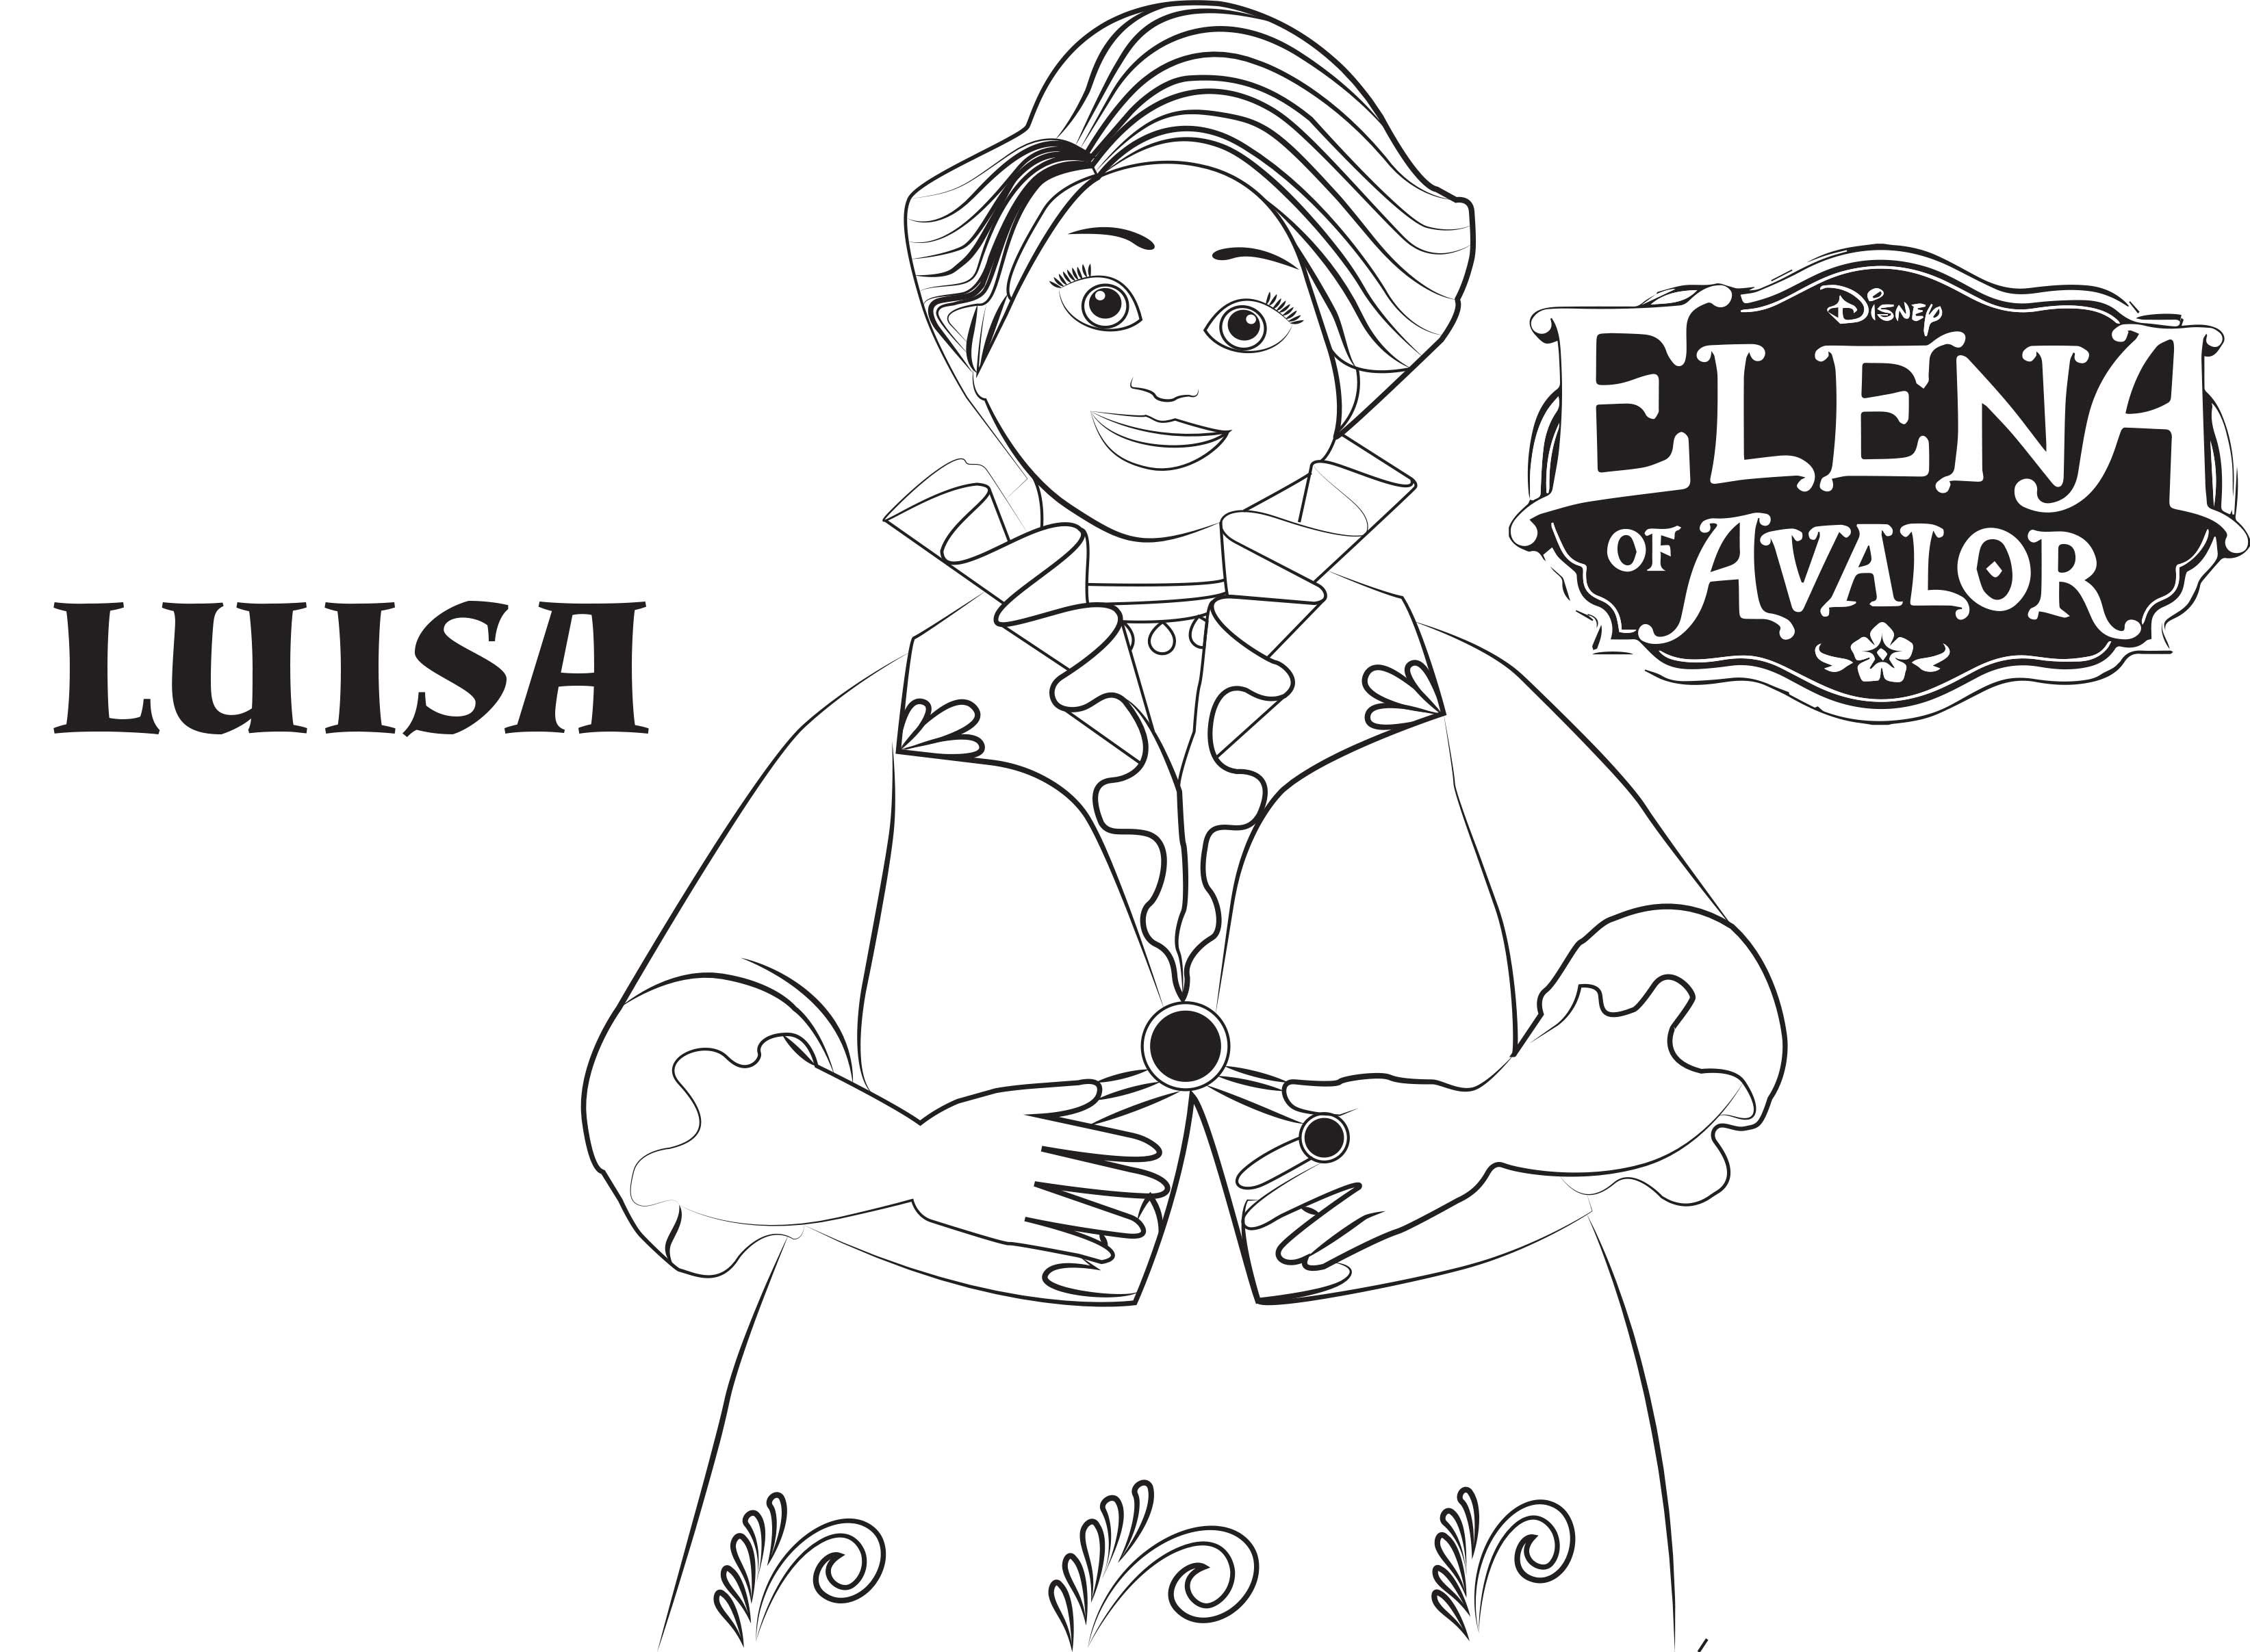 Color crew printables - Disney S Elena Of Avalor Coloring Pages Sheet Free Disney Printable Elena Of Avalor Color Page